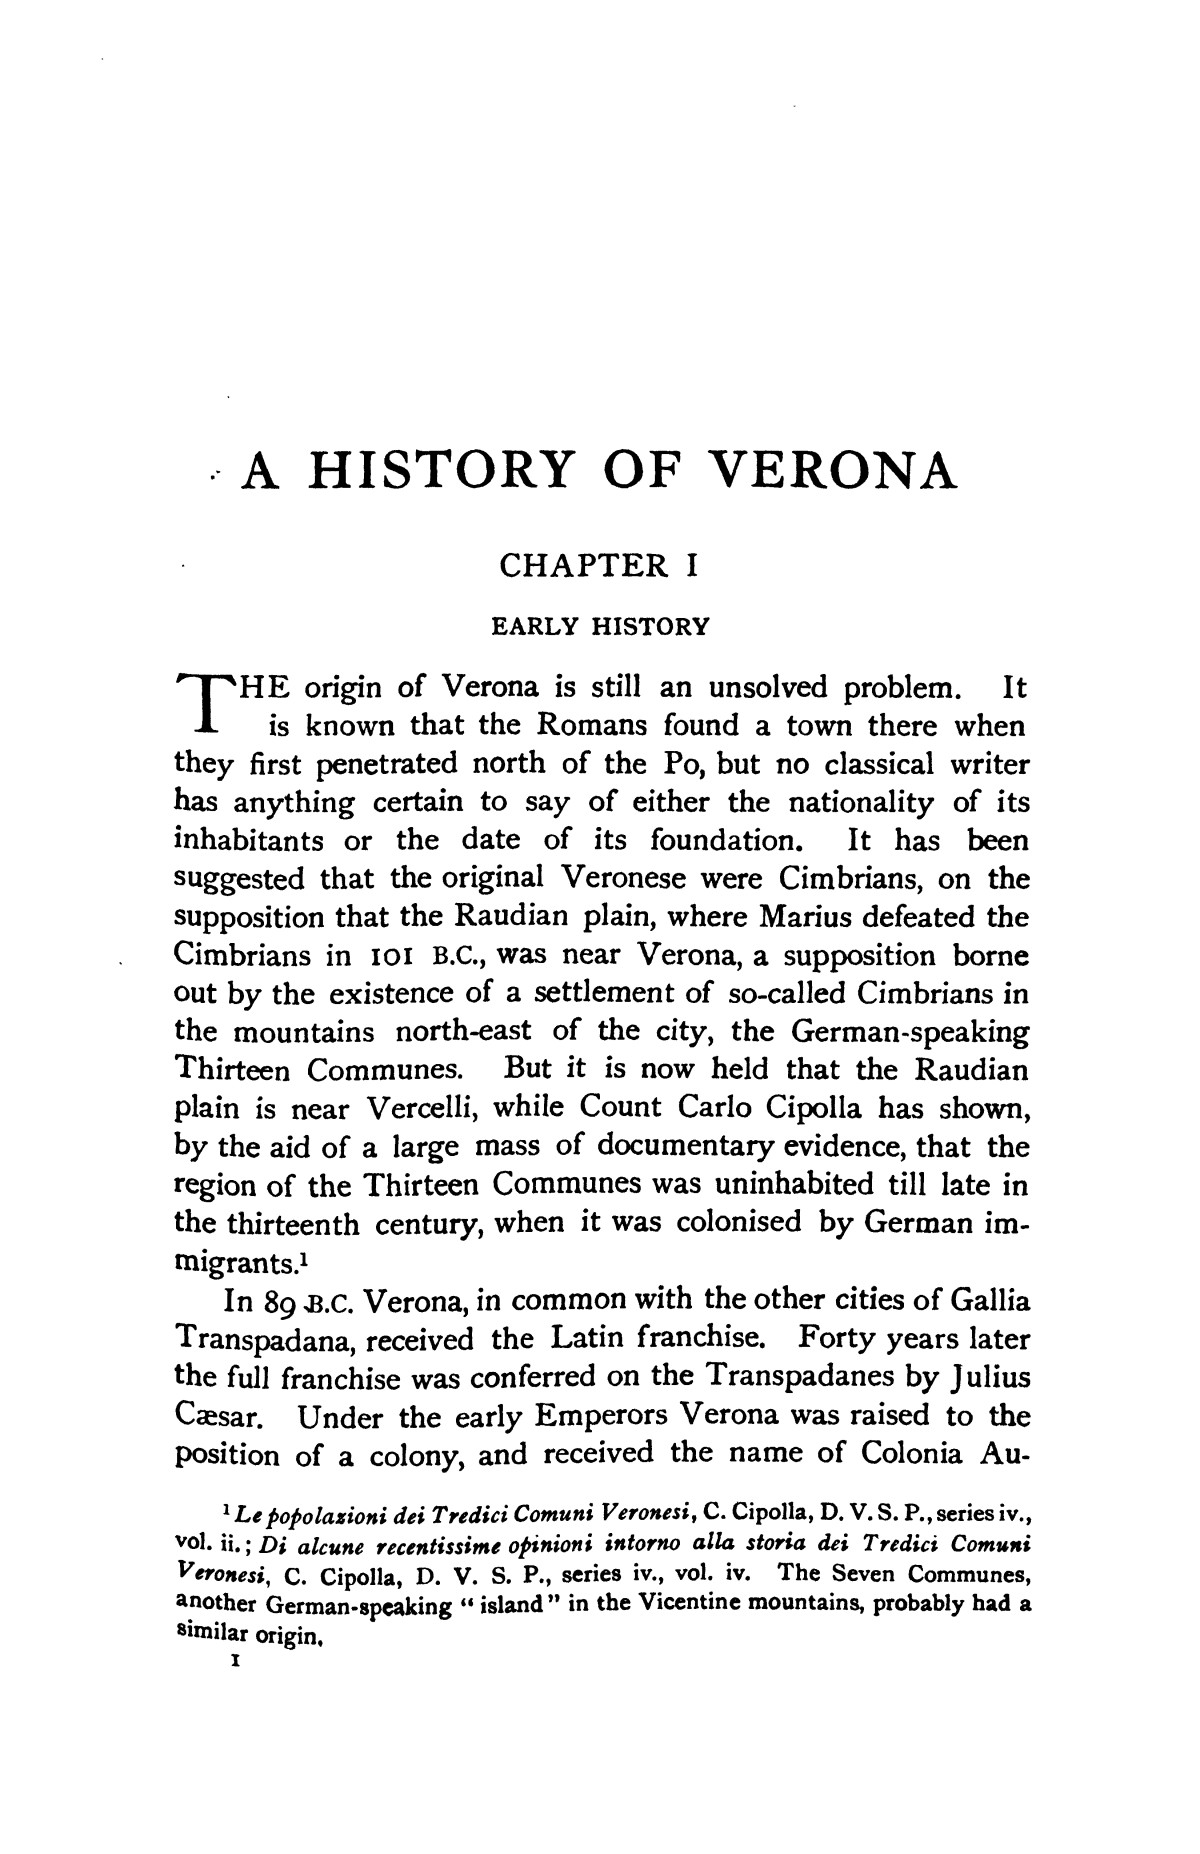 A history of Verona, by A. M. Allen.  Edited by Edward Armstrong, with twenty illustrations and three maps.                                                                                                      [Sequence #]: 16 of 493